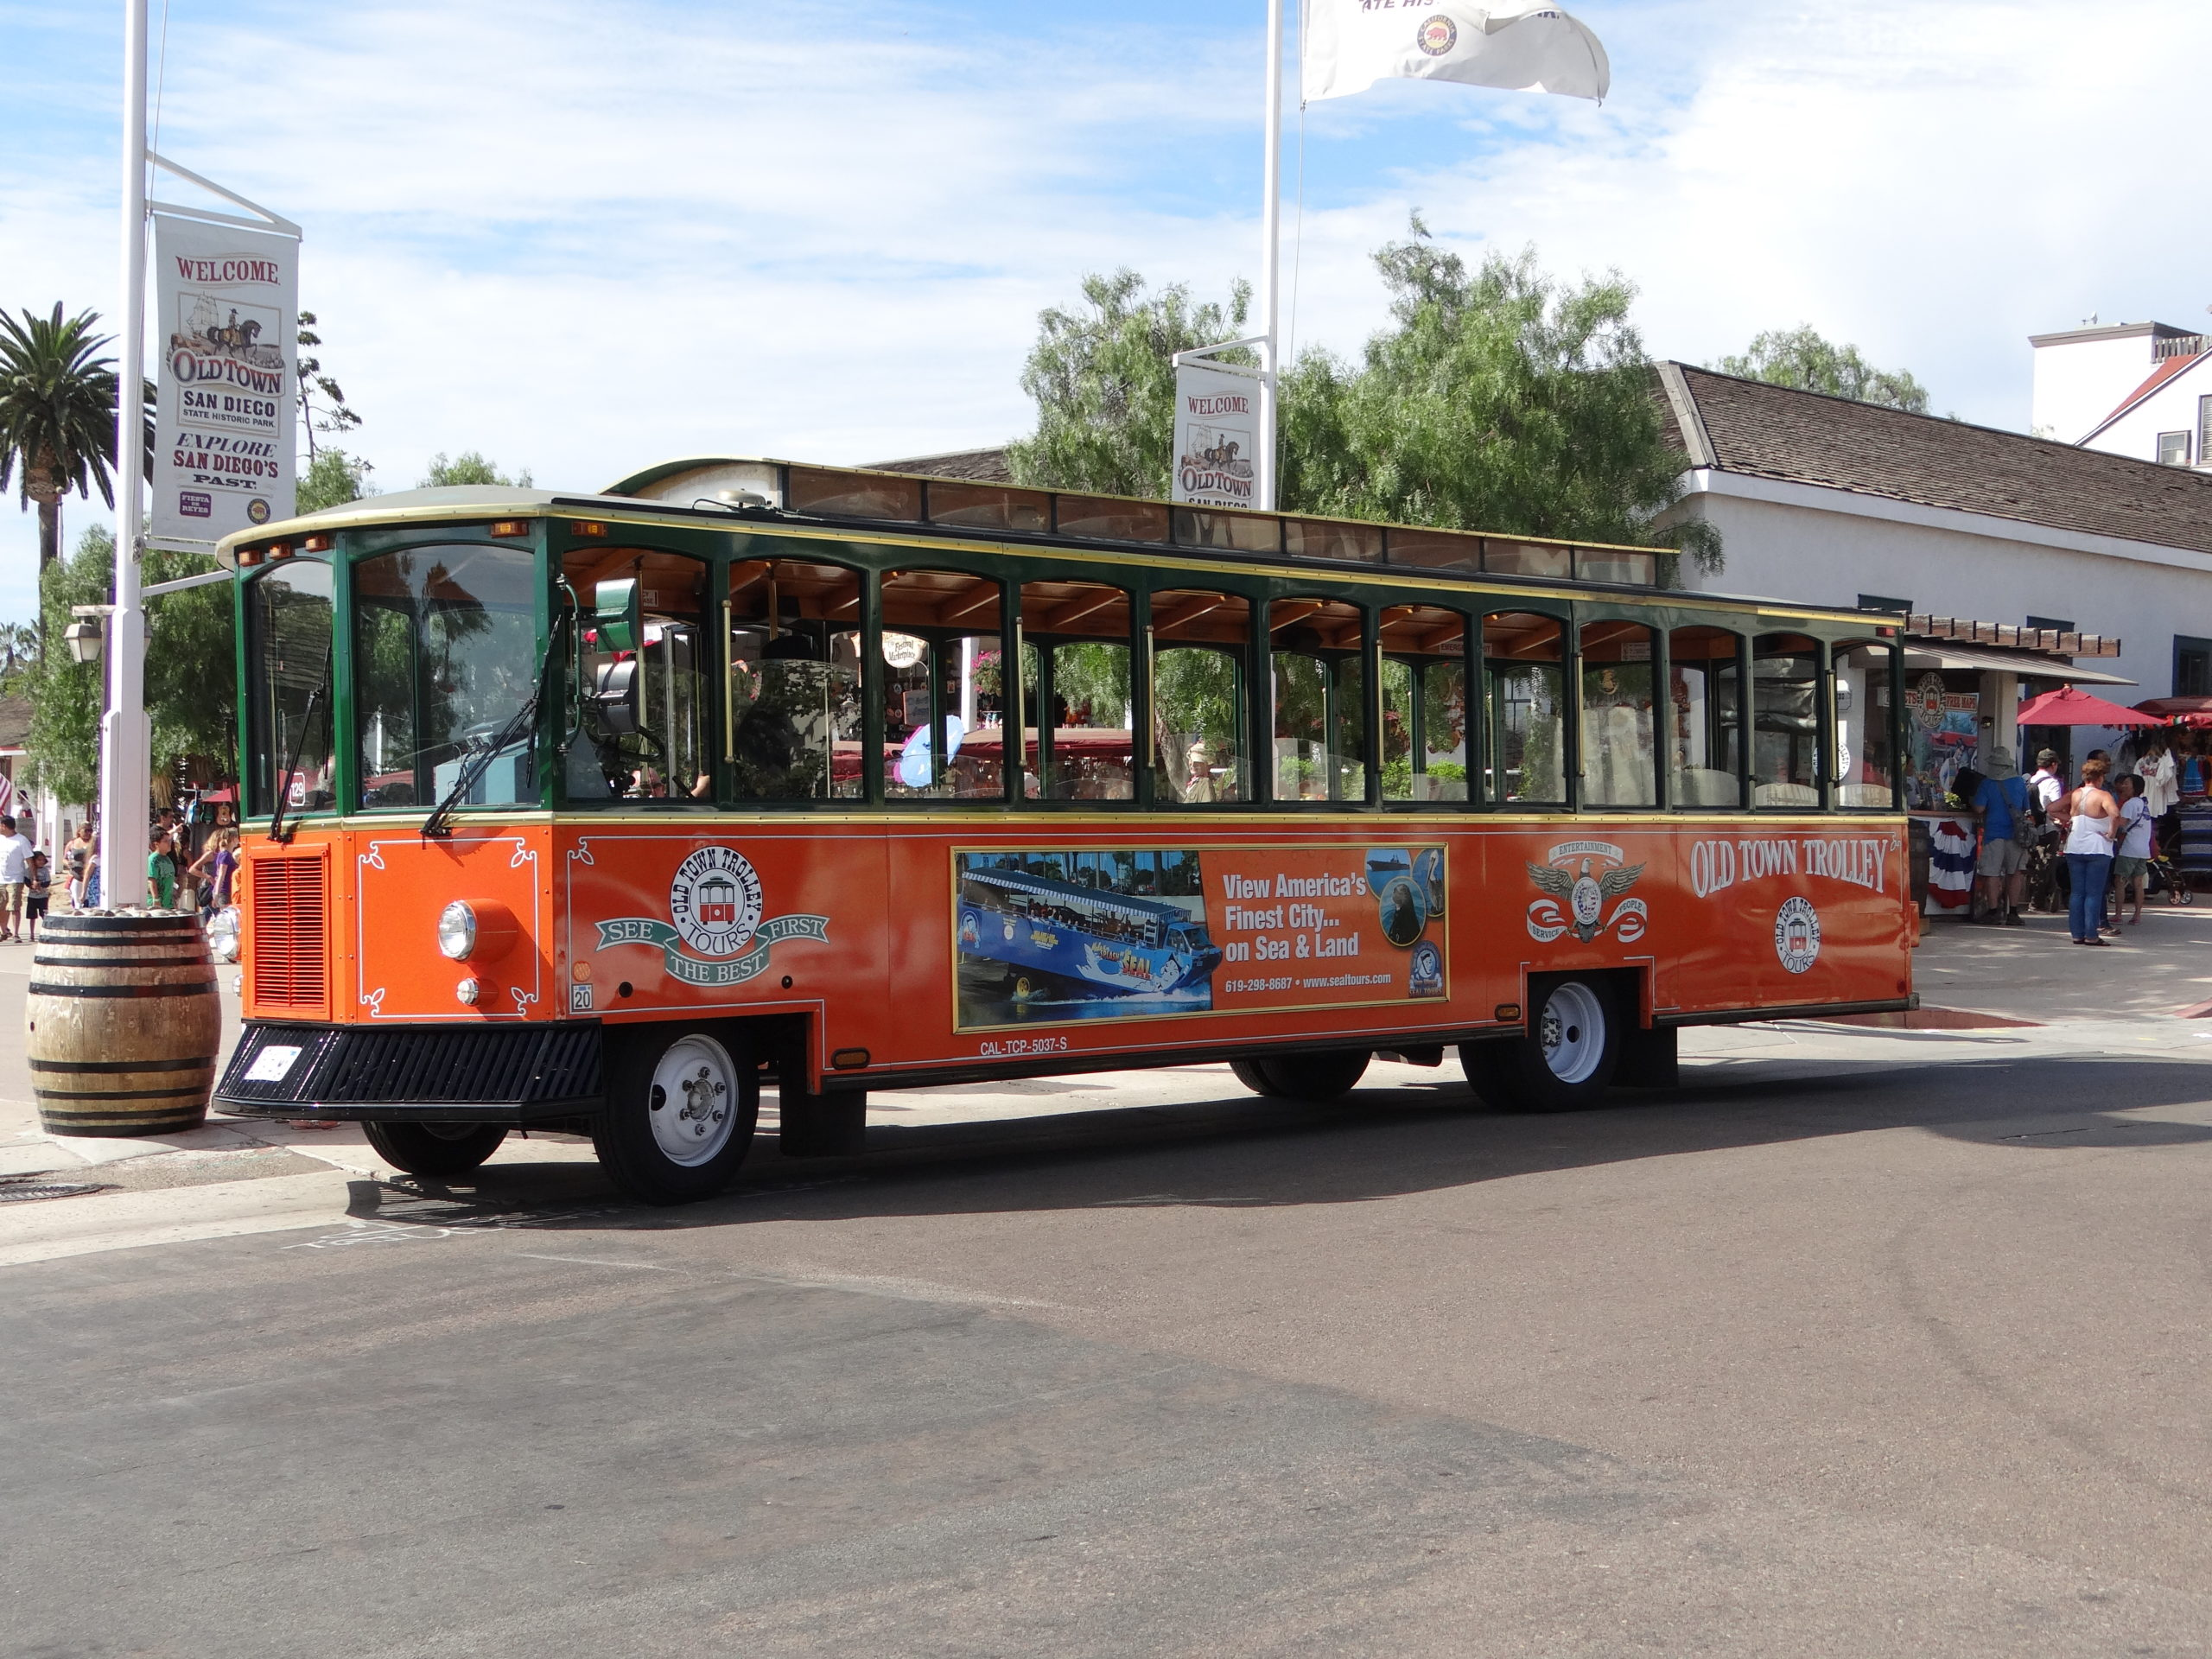 San Diego Old Town Trolley Tours